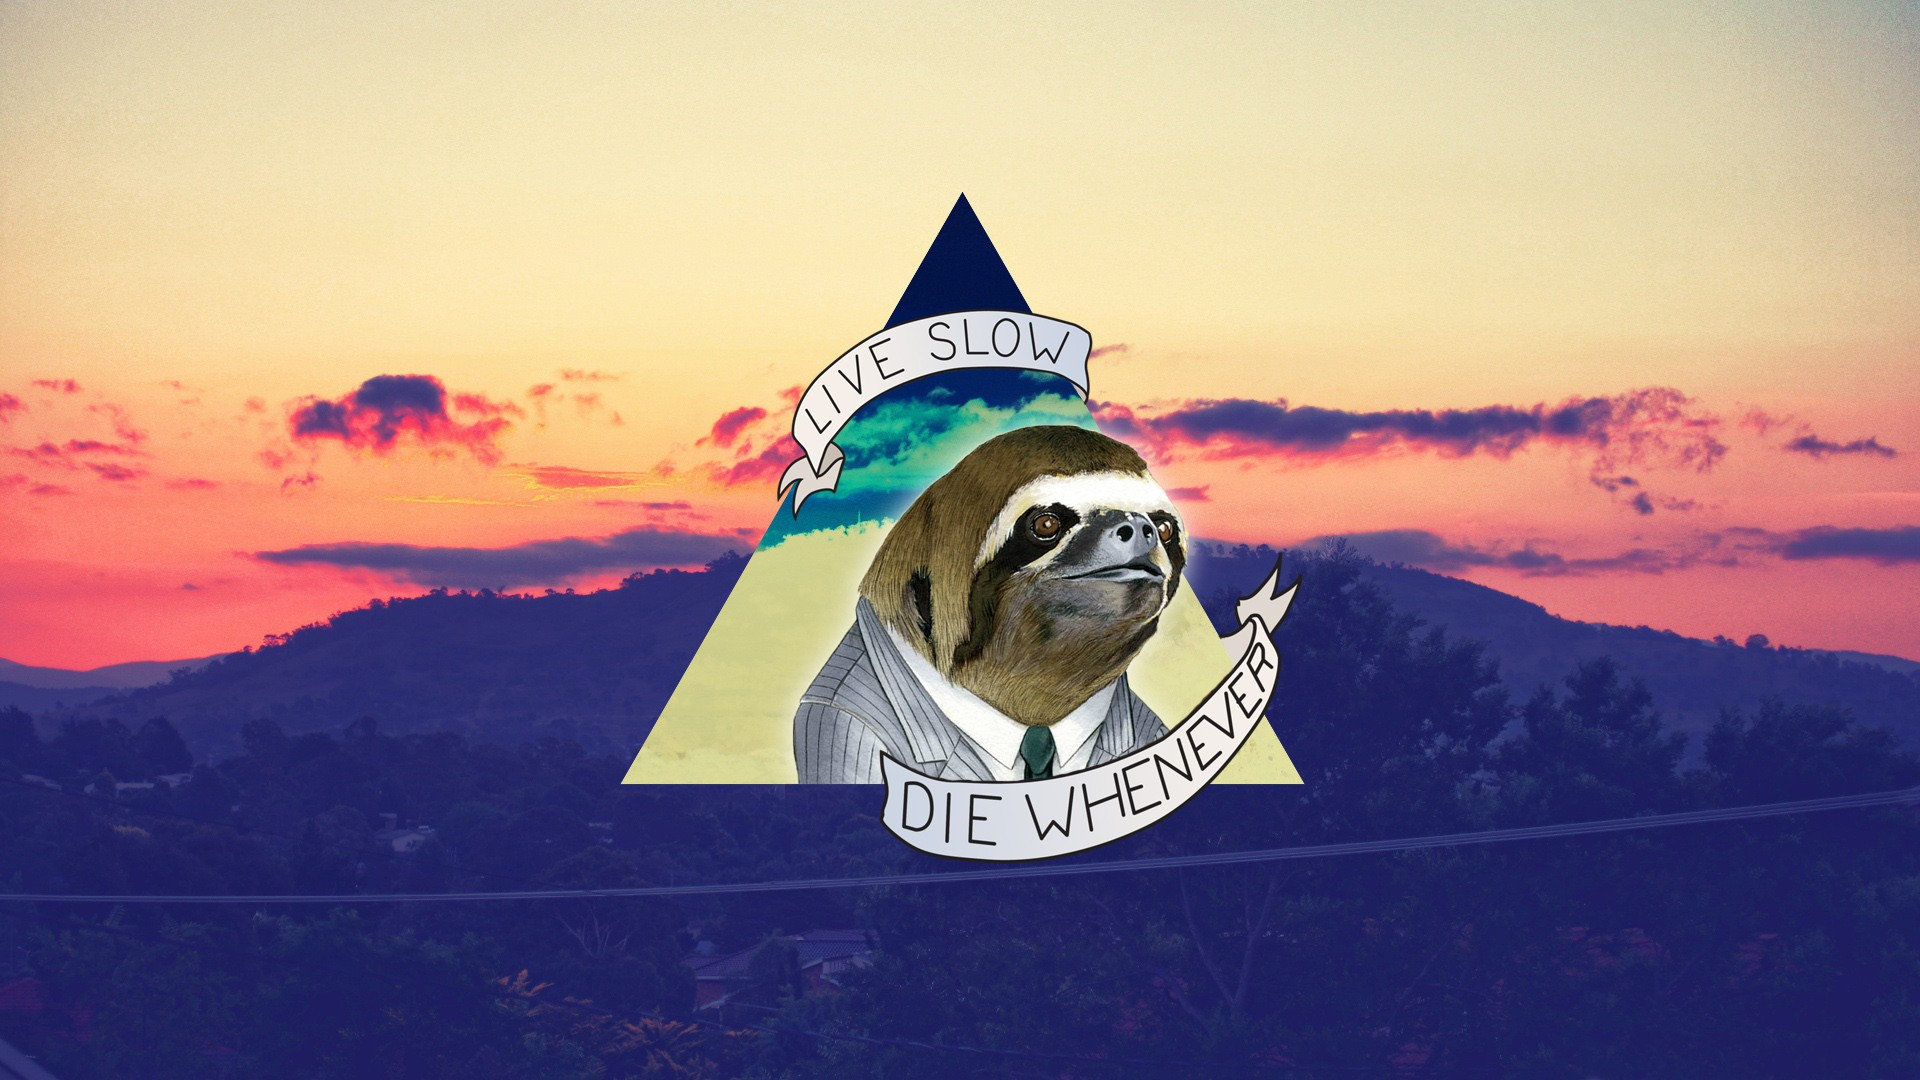 Live slow die whenever wallpaper sloths quotes 1920x1080